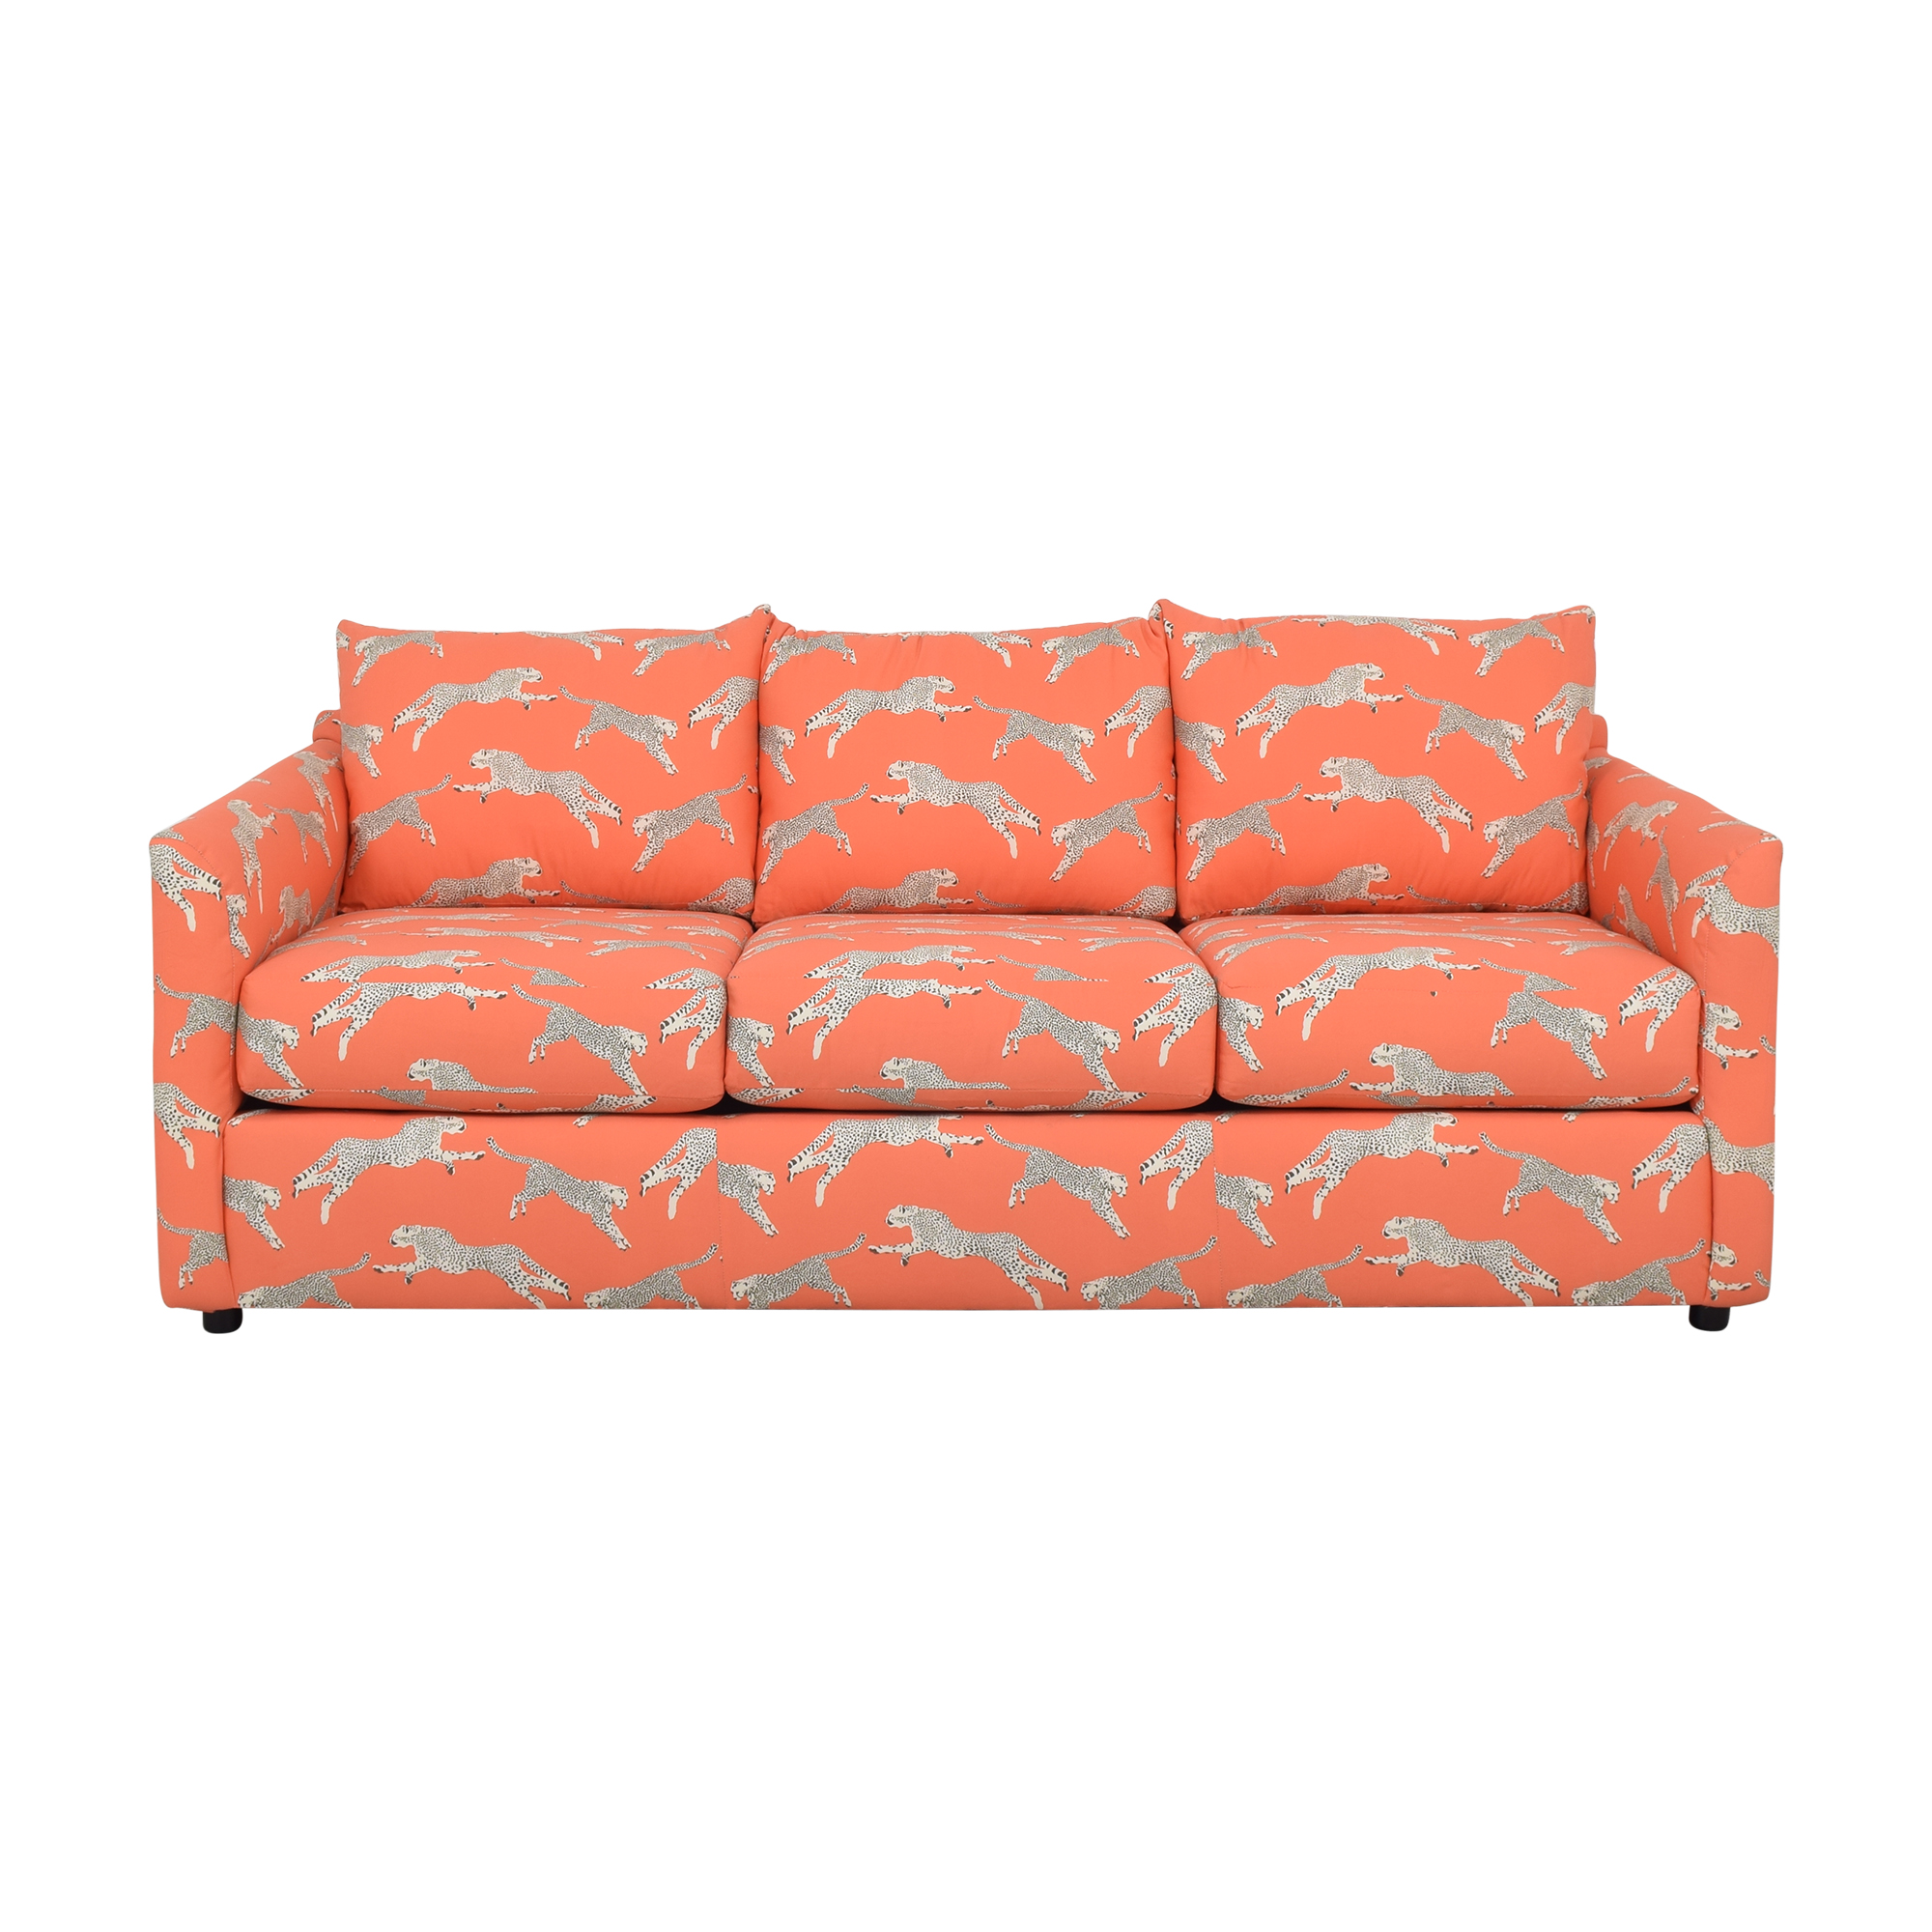 The Inside The Inside Tailored Sleeper Sofa in Coral Zebra by Scalamandré Sofas